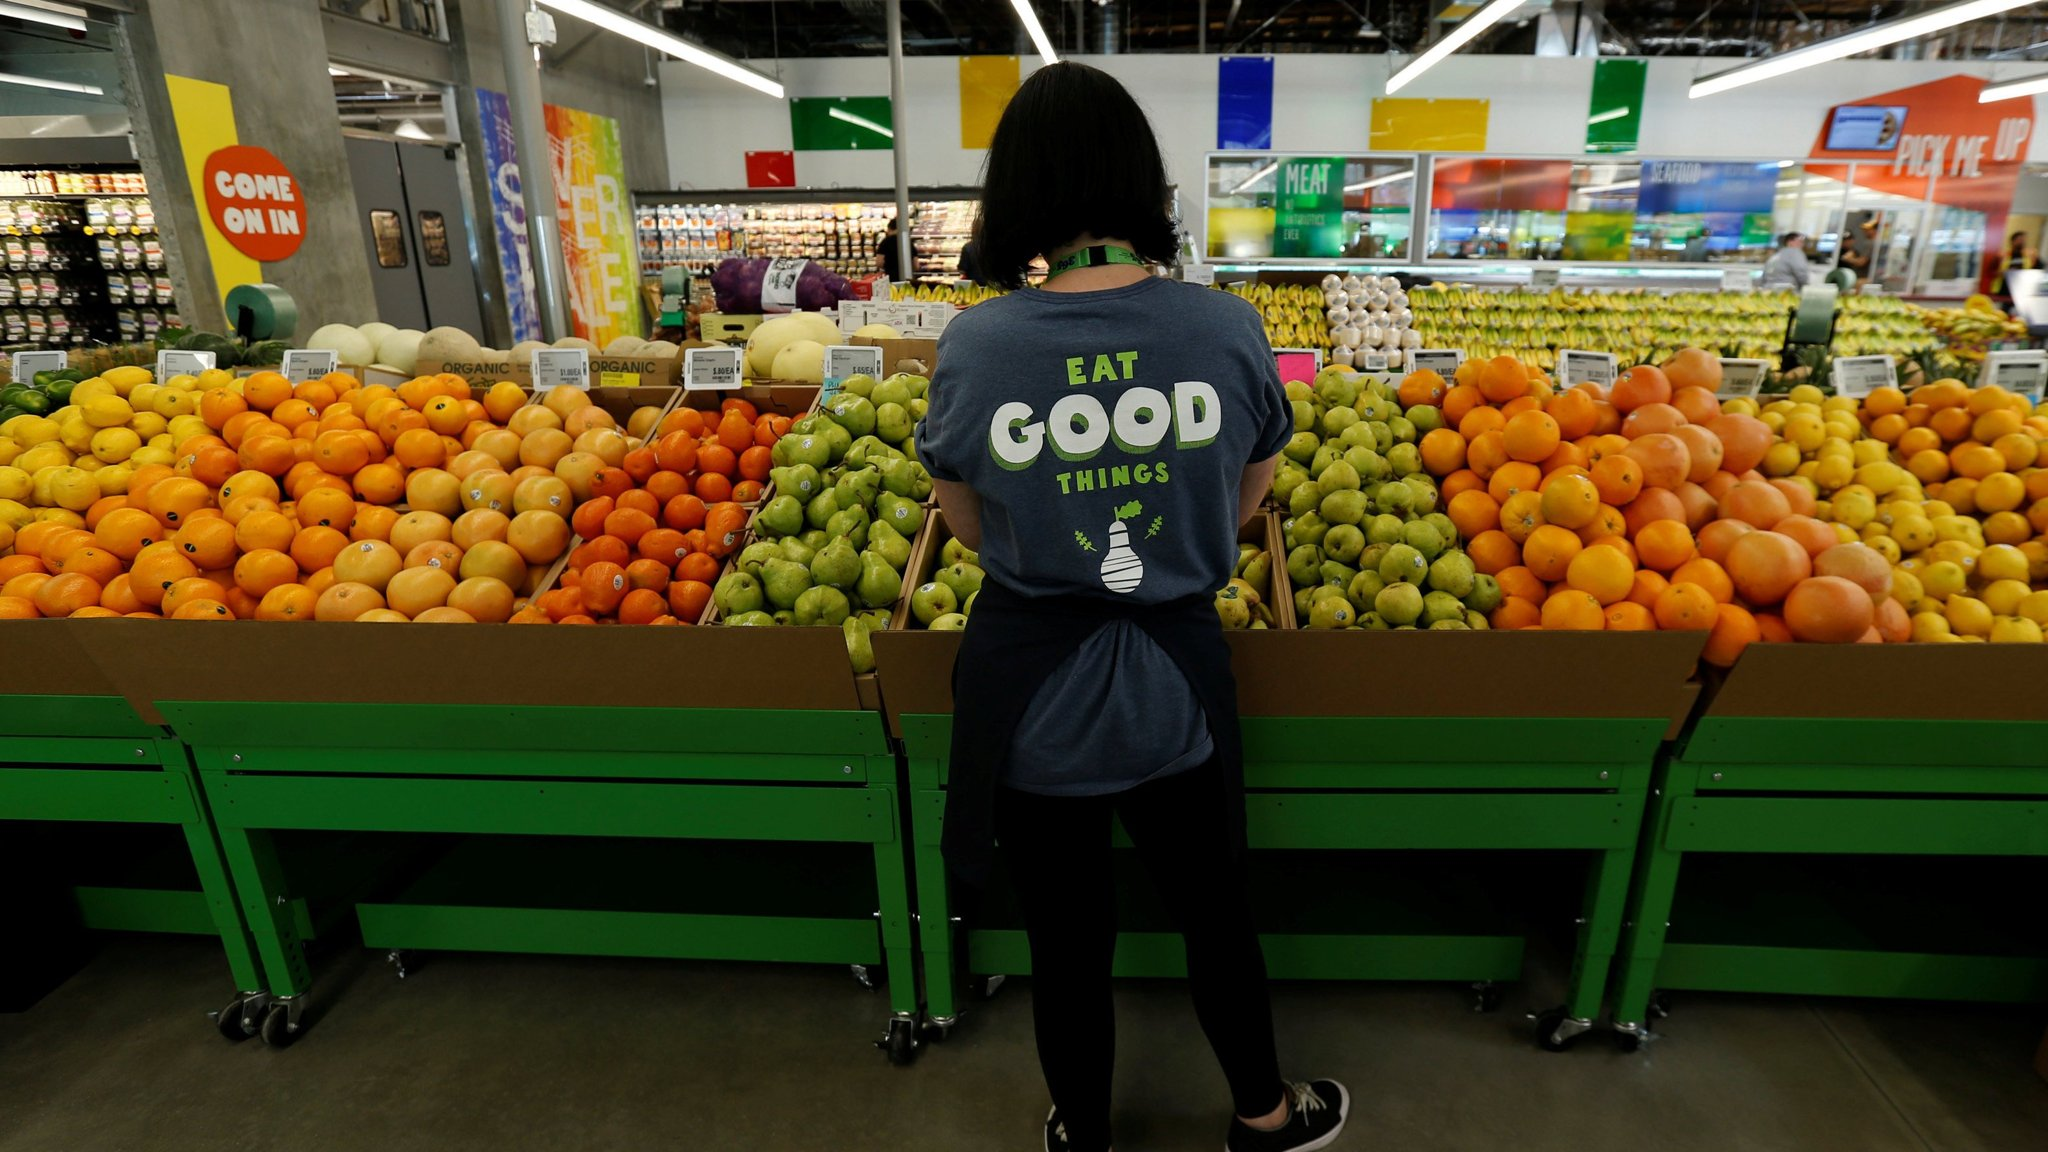 Albertsons Explores Bid For High End Grocer Whole Foods Financial Times